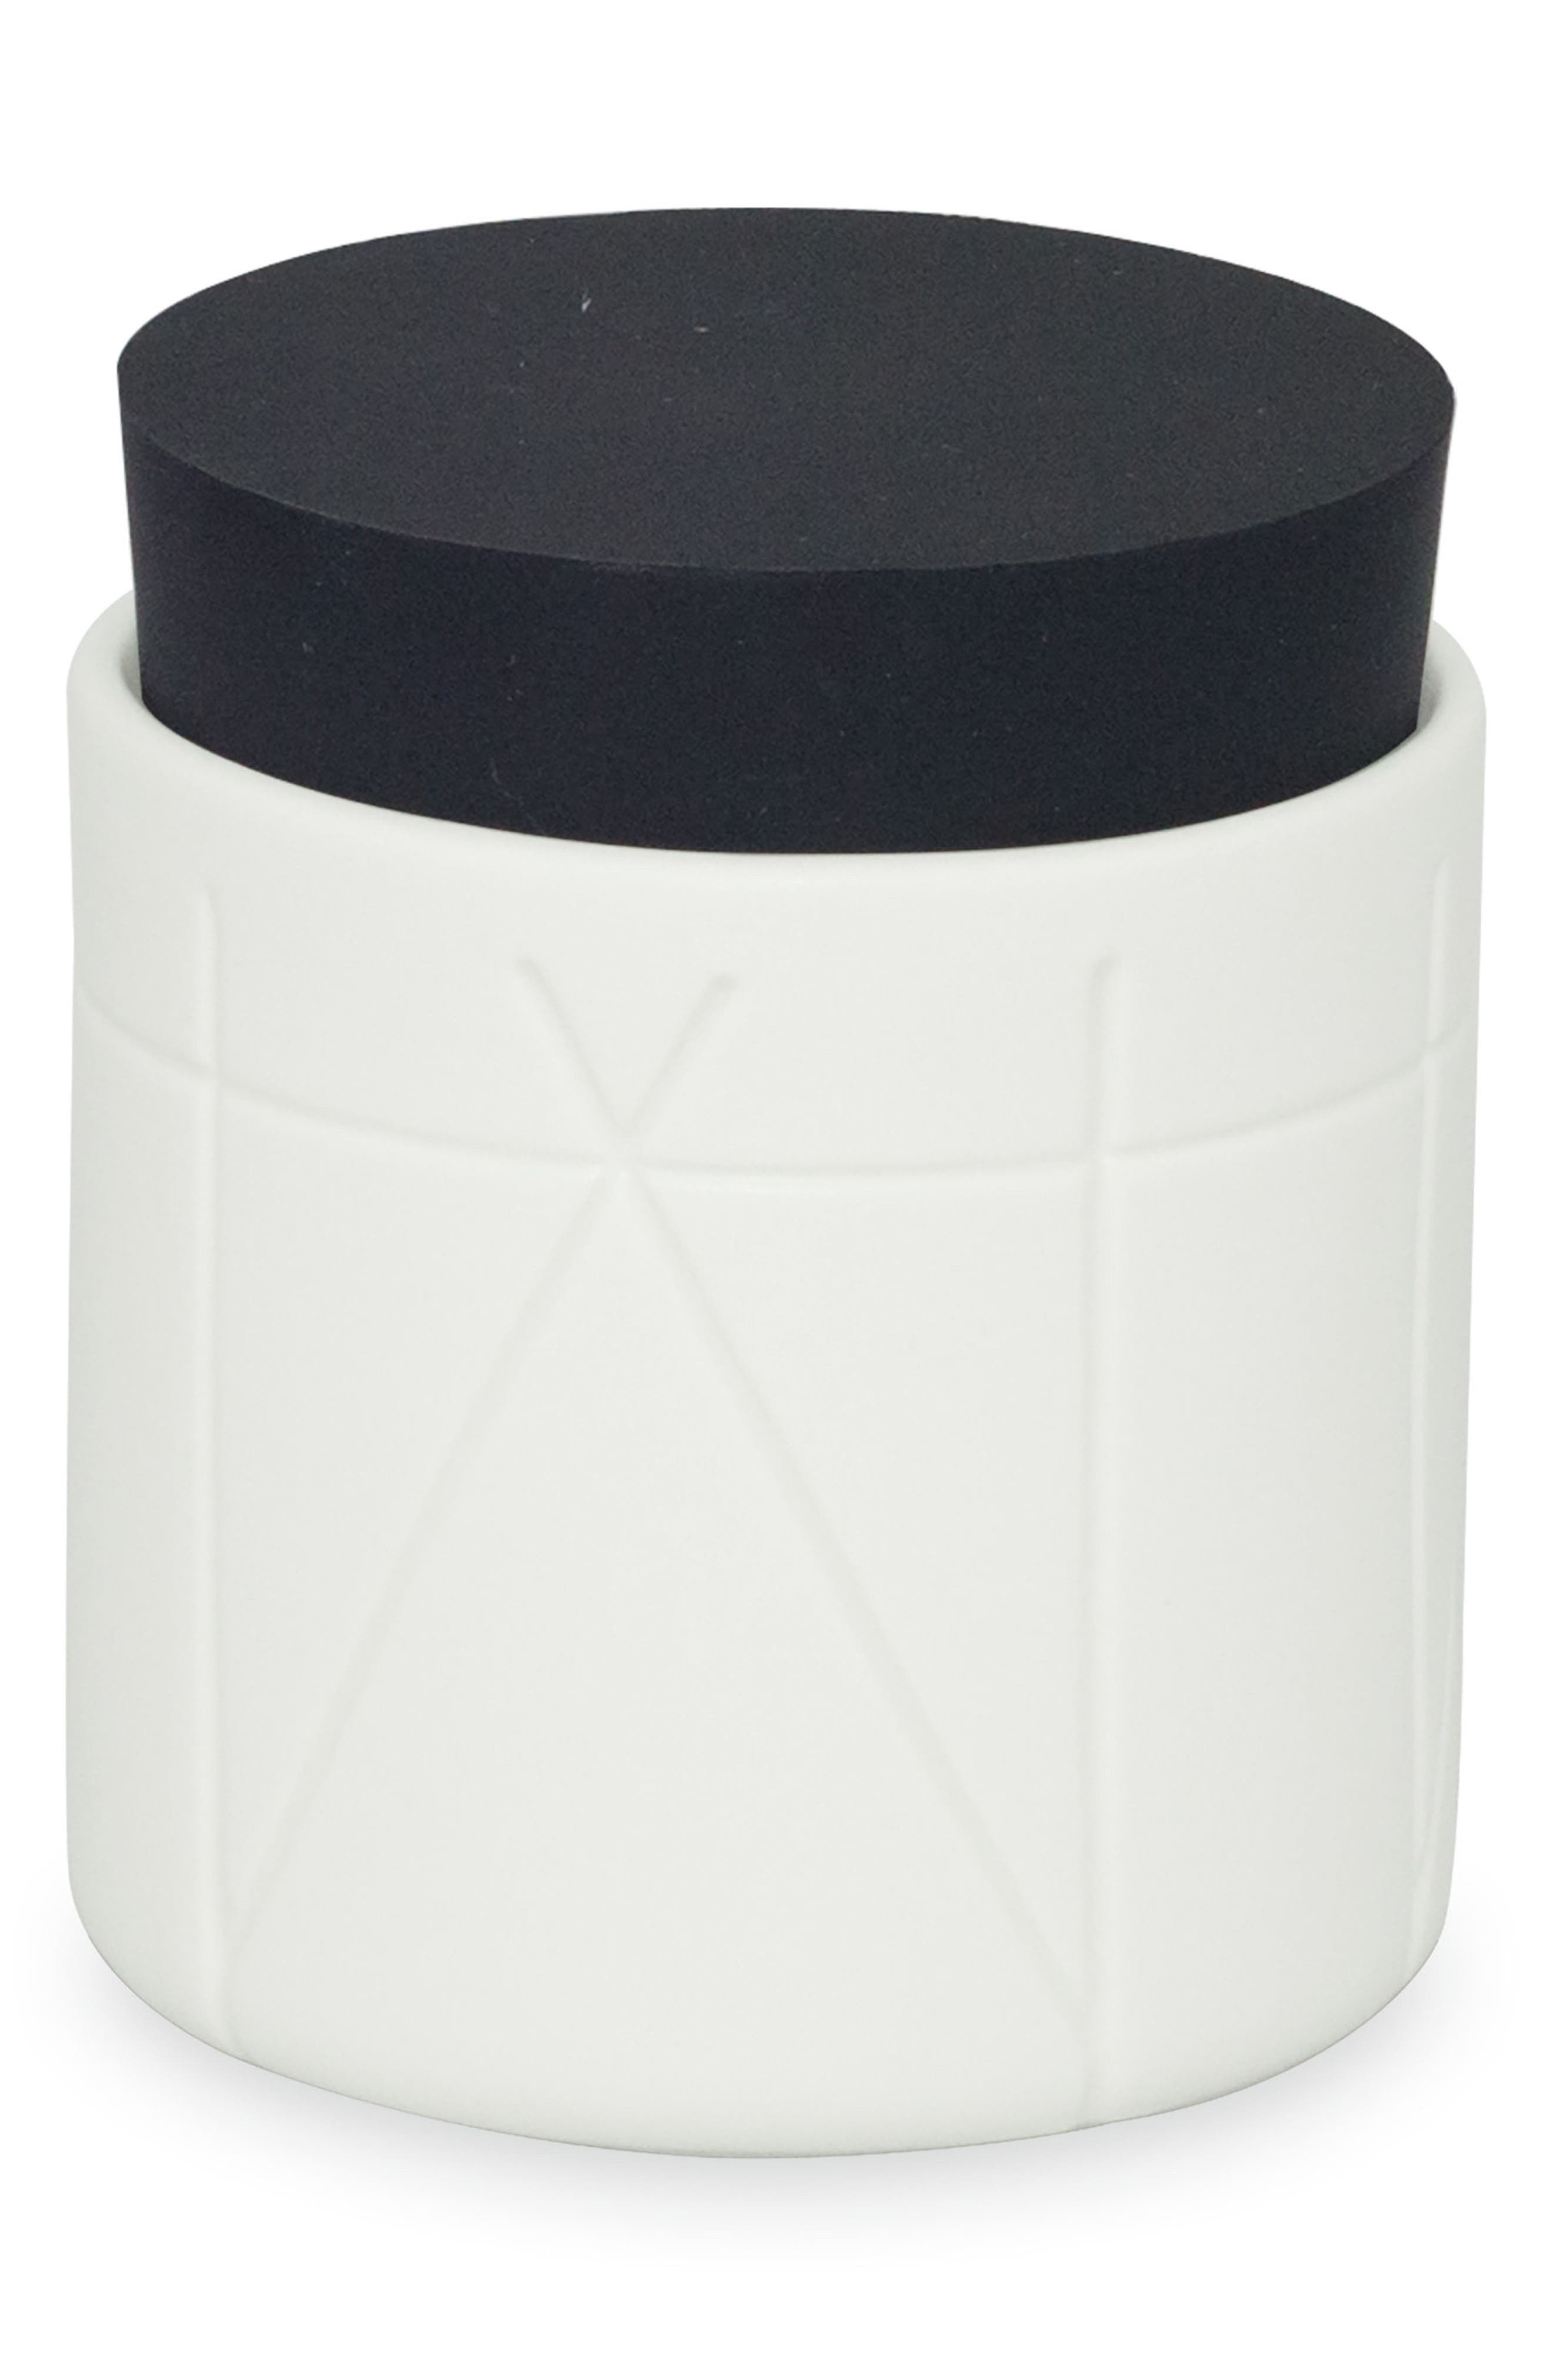 Alternate Image 1 Selected - DKNY Geometrix Jar